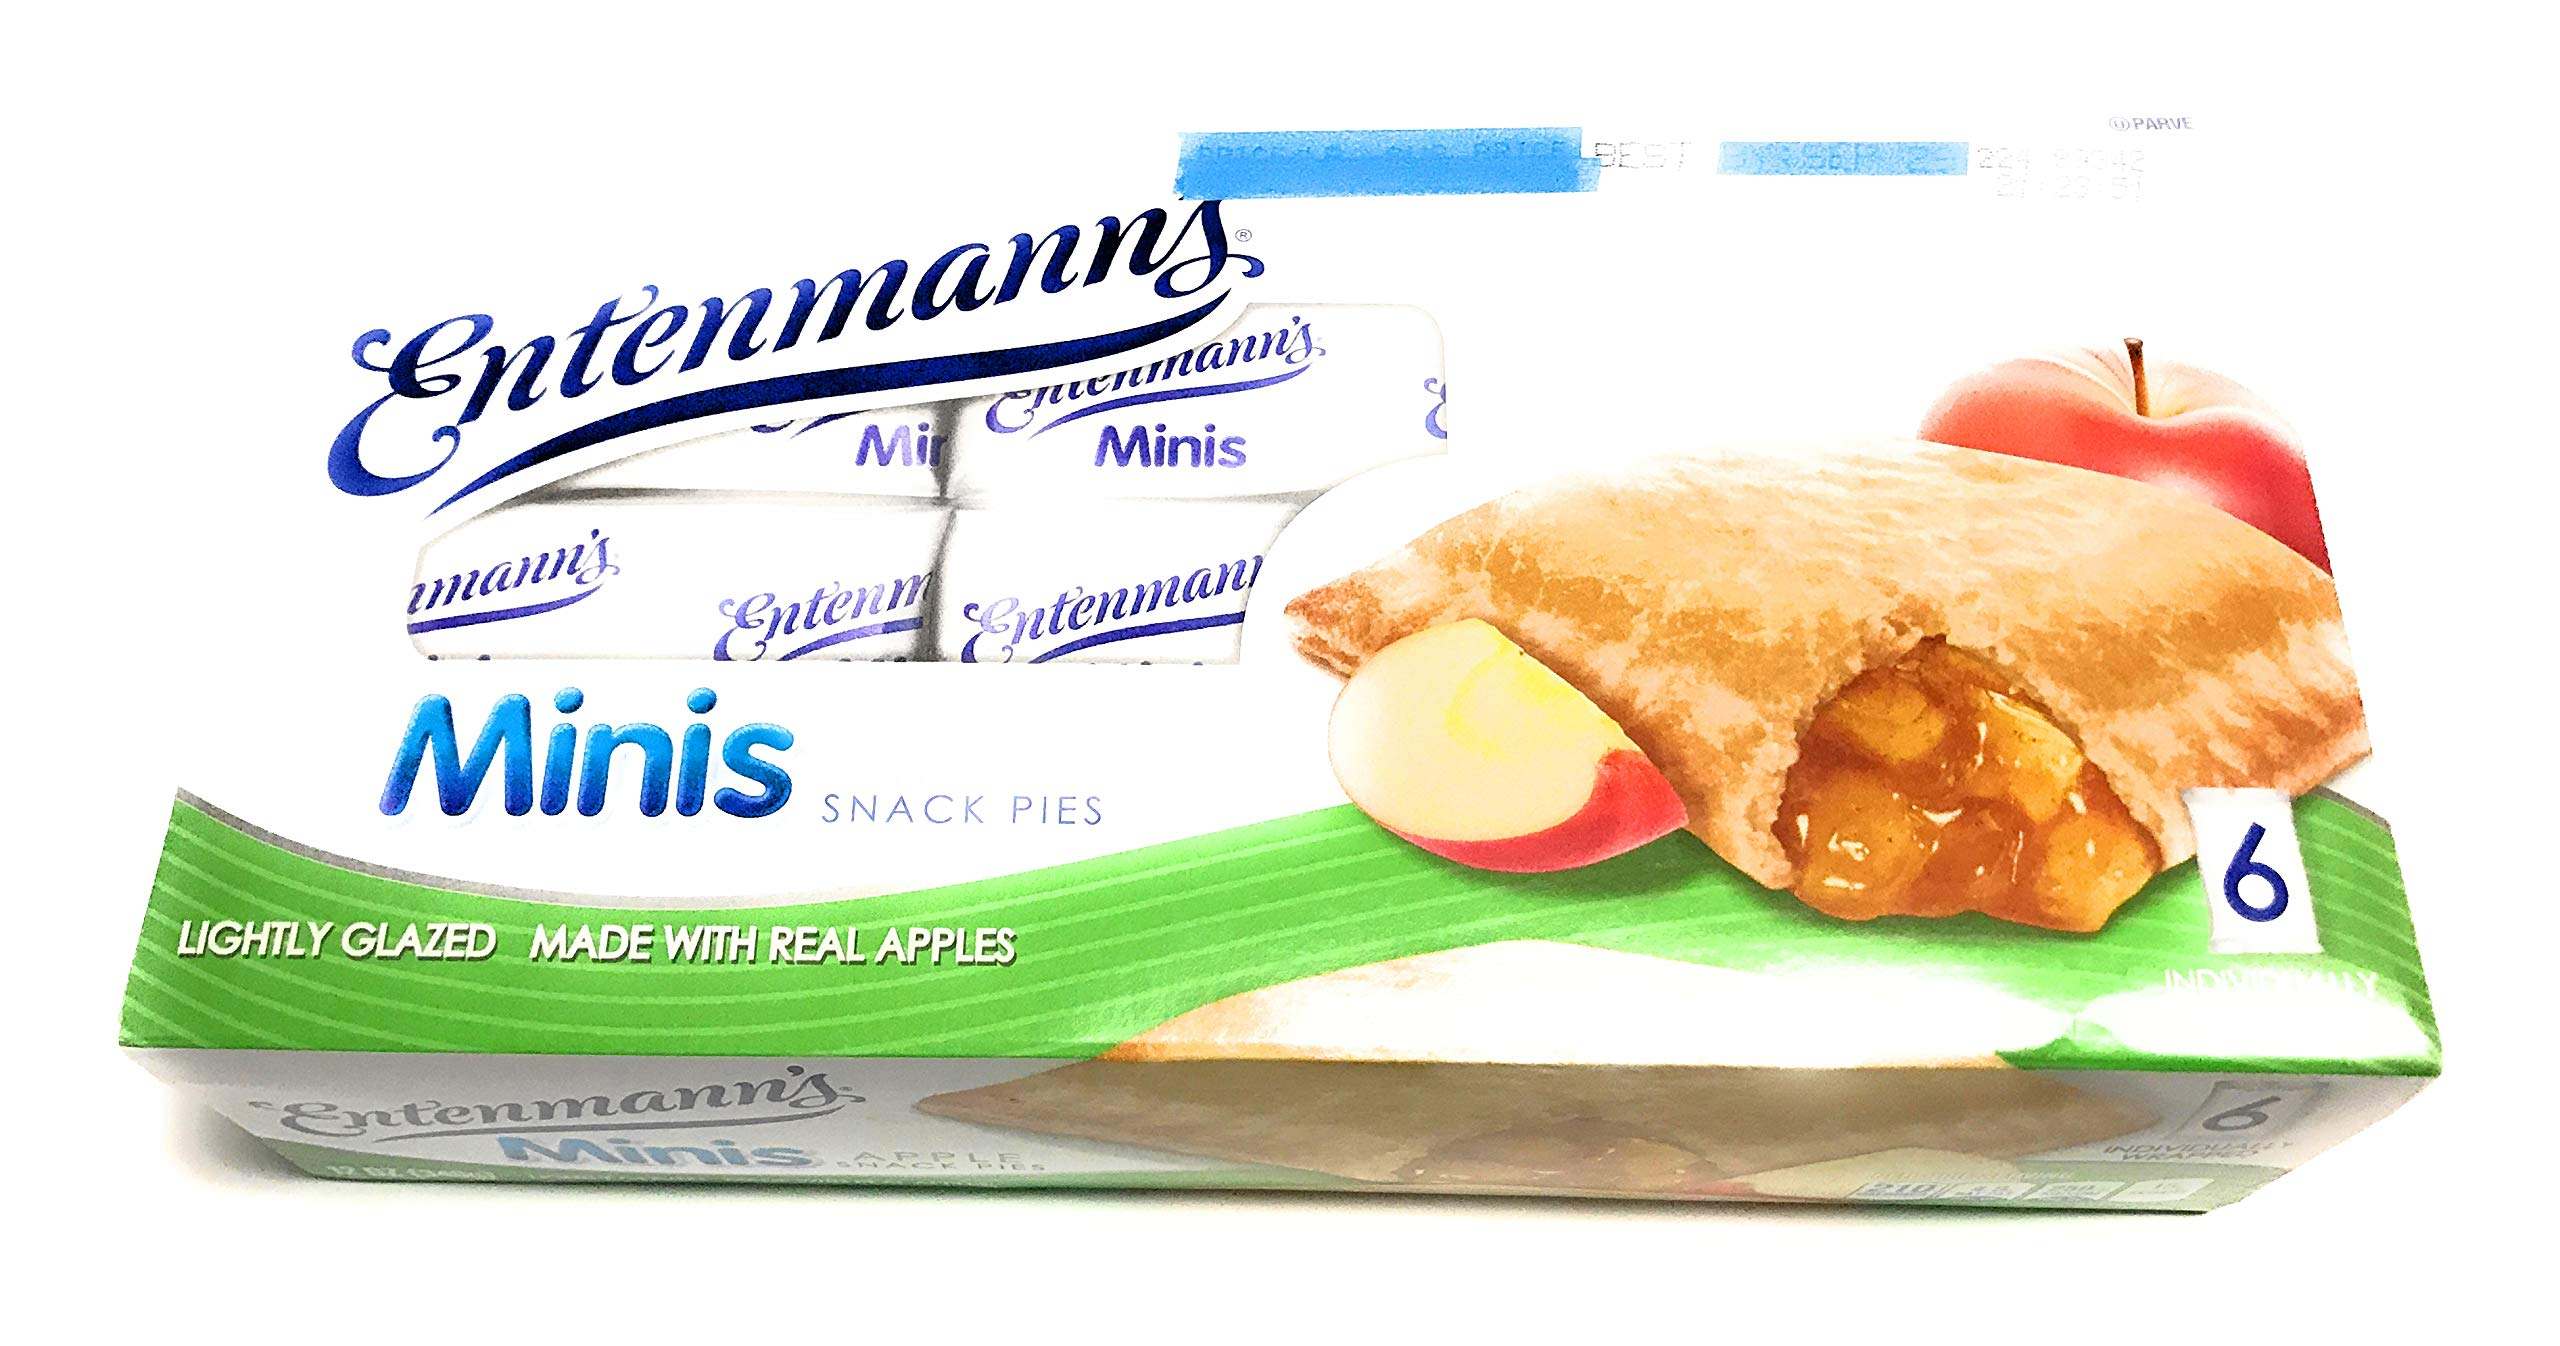 |Entenmann's |Minis Apple Snack Pies| Lightly Glazed |Delicious |Tasty| Yummy | 12 oz| 6 Individually Wrapped count | 1 Box | by Entenmann's